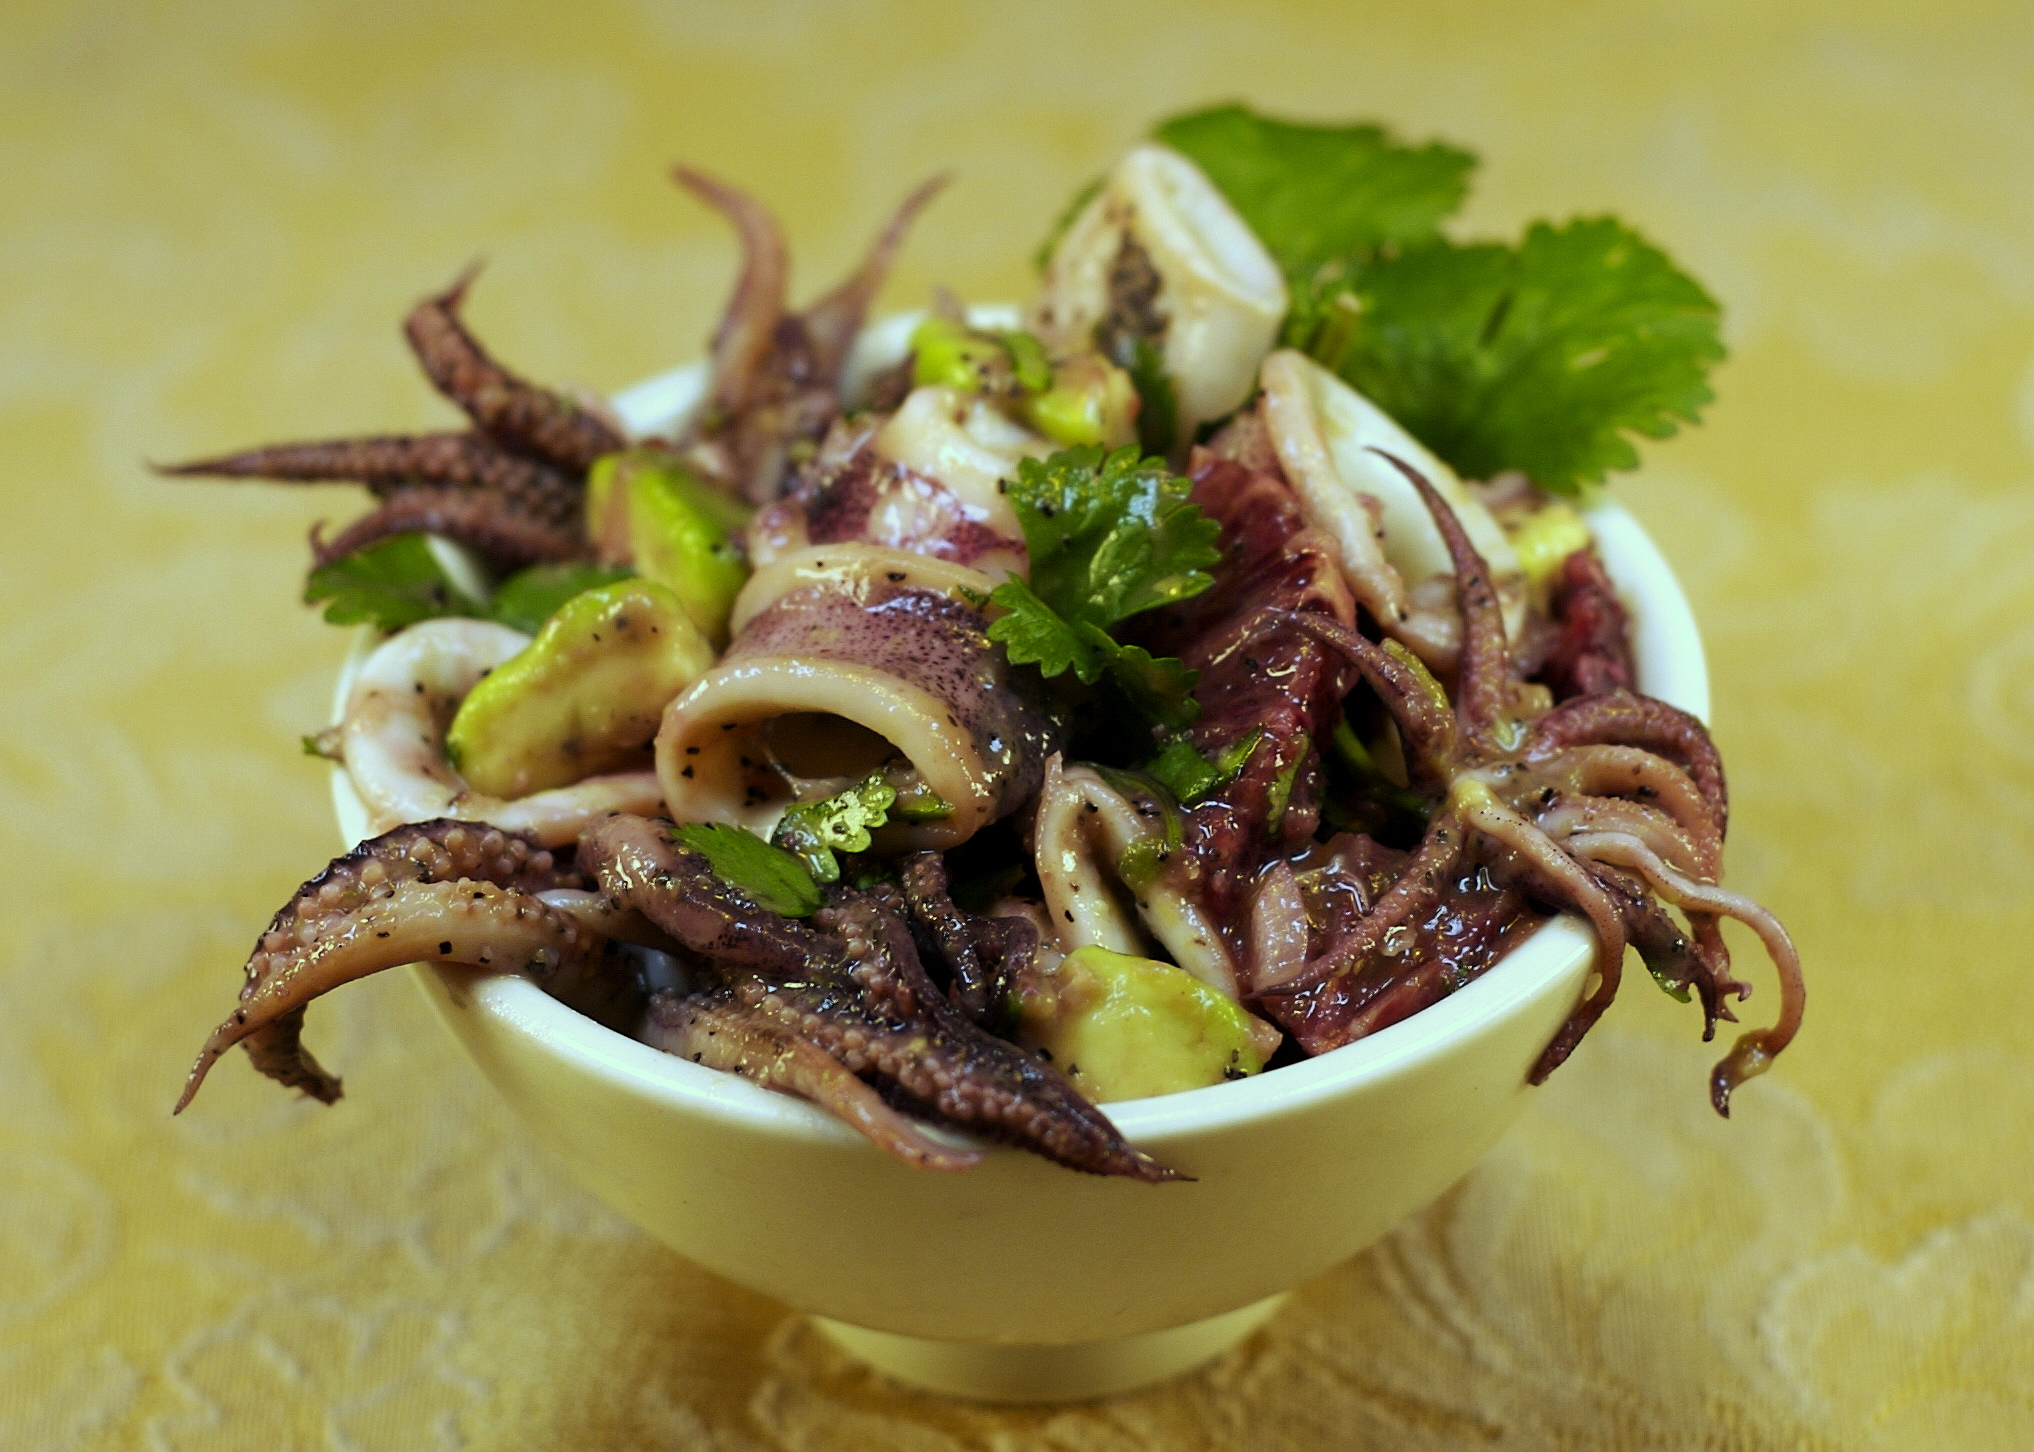 Squid Salad with Blood Orange and Avocado